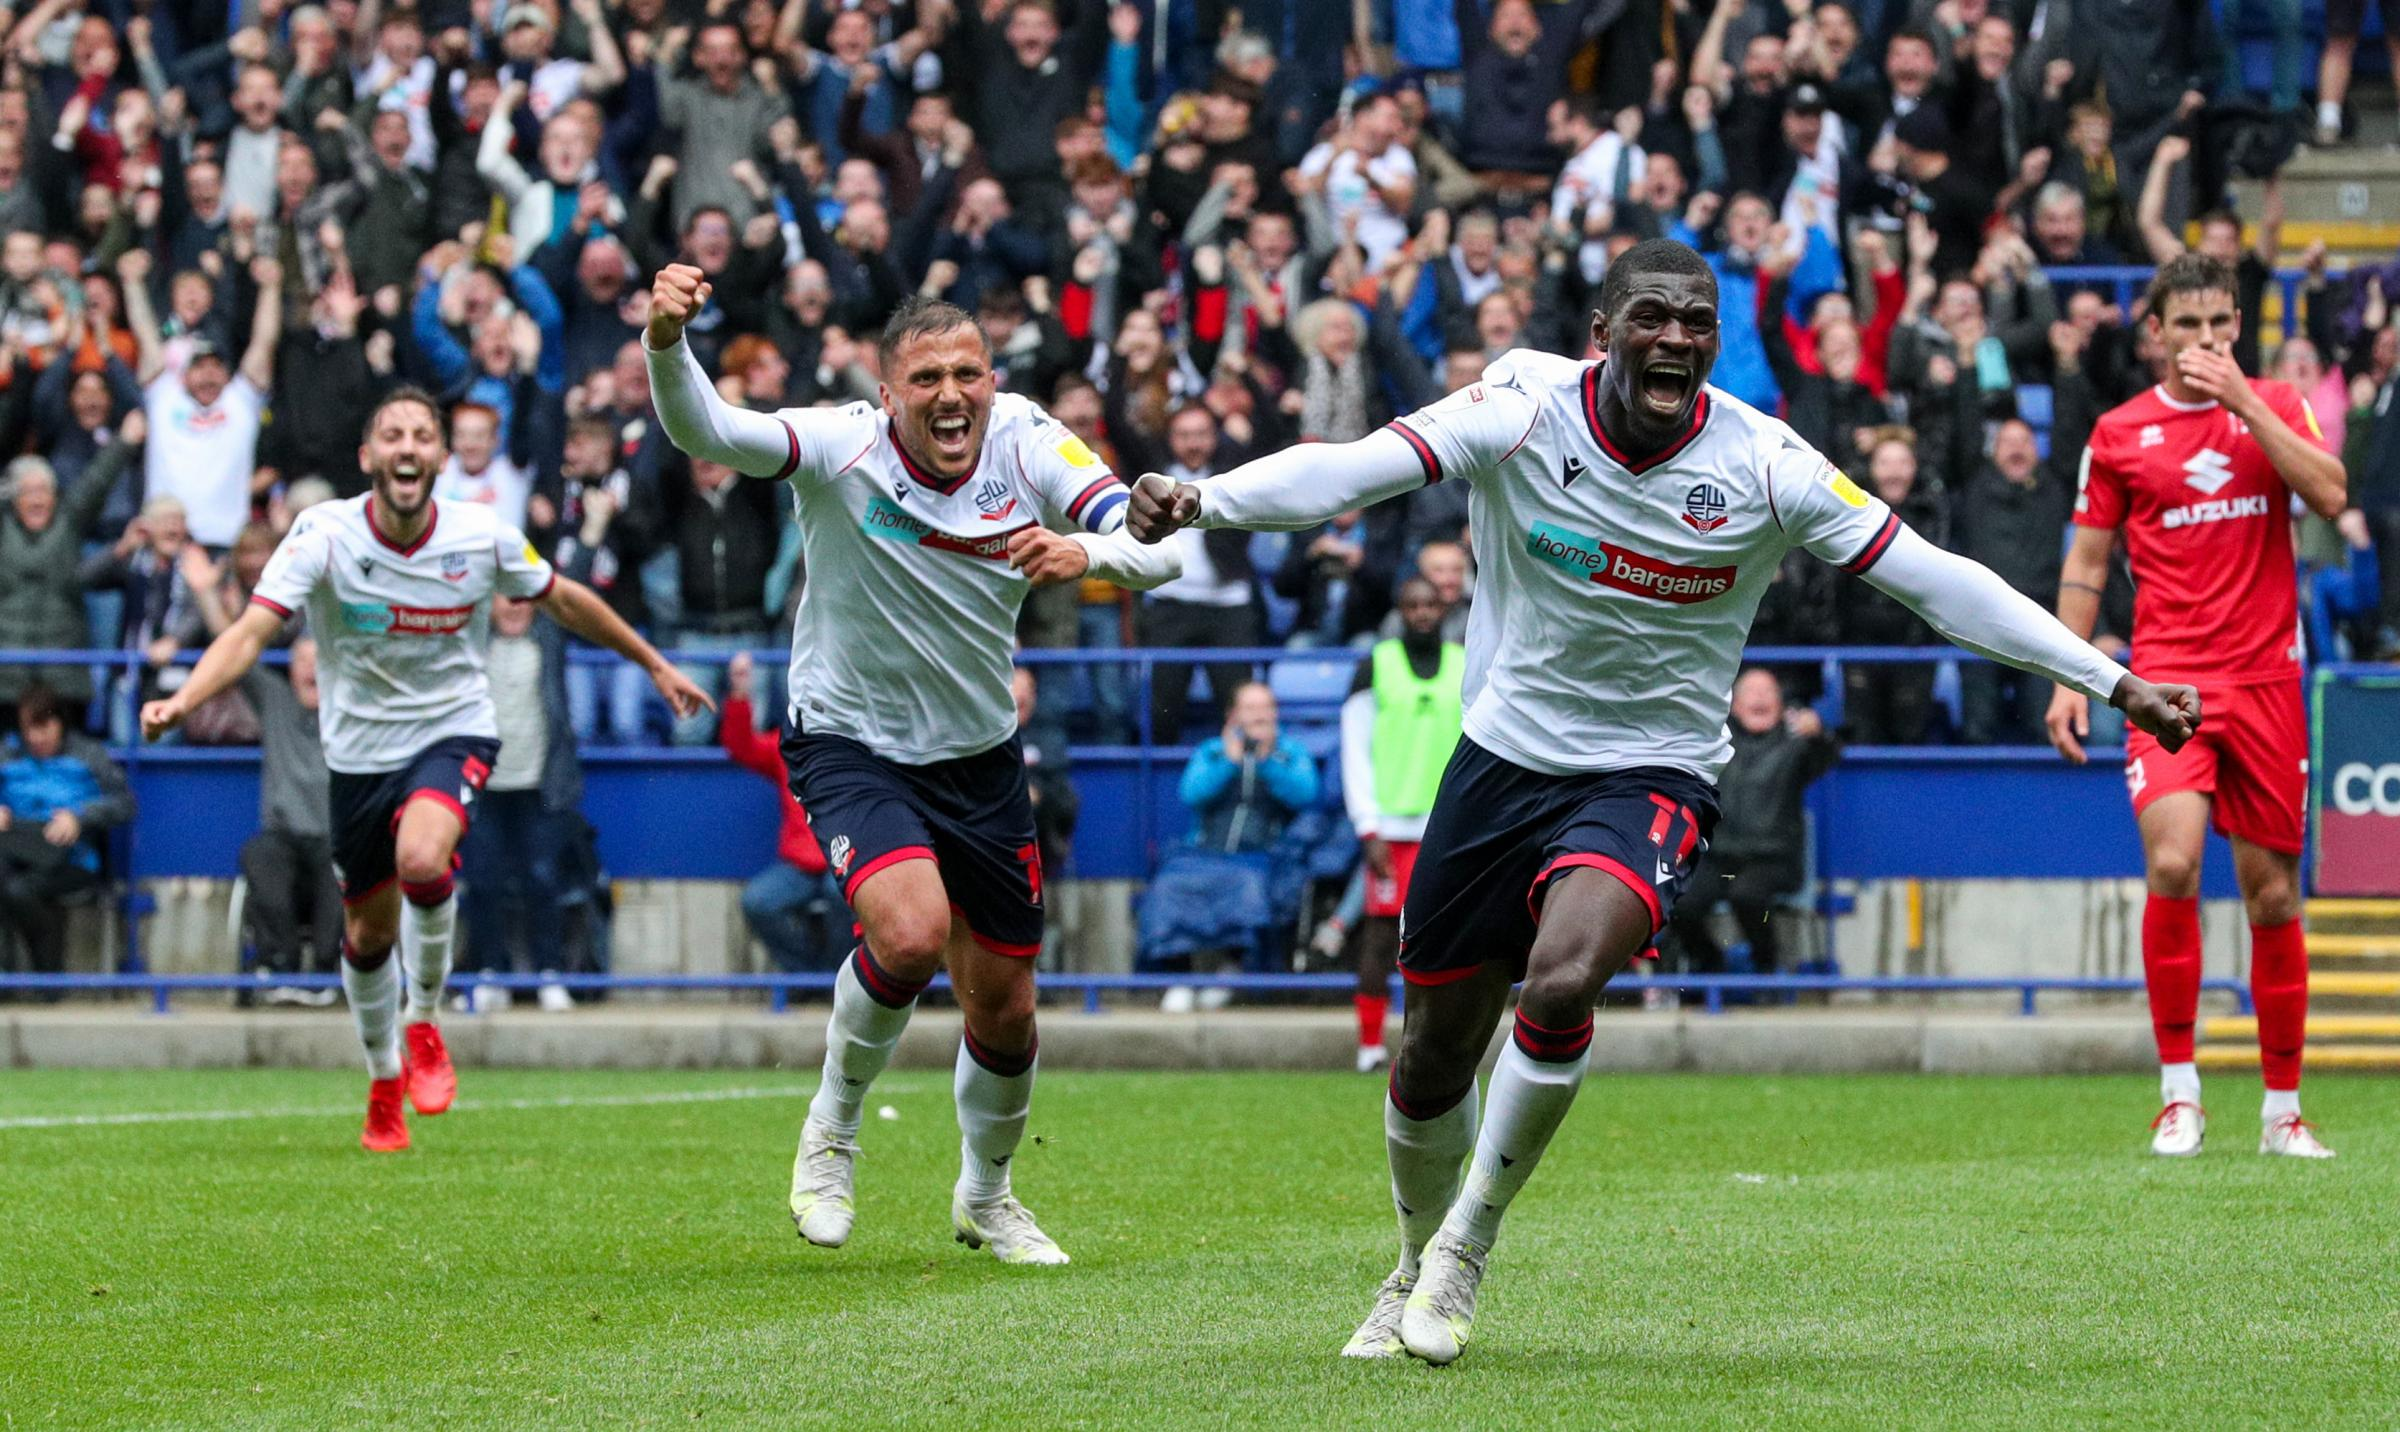 Bolton Wanderers fans react to opening day draw with MK Dons